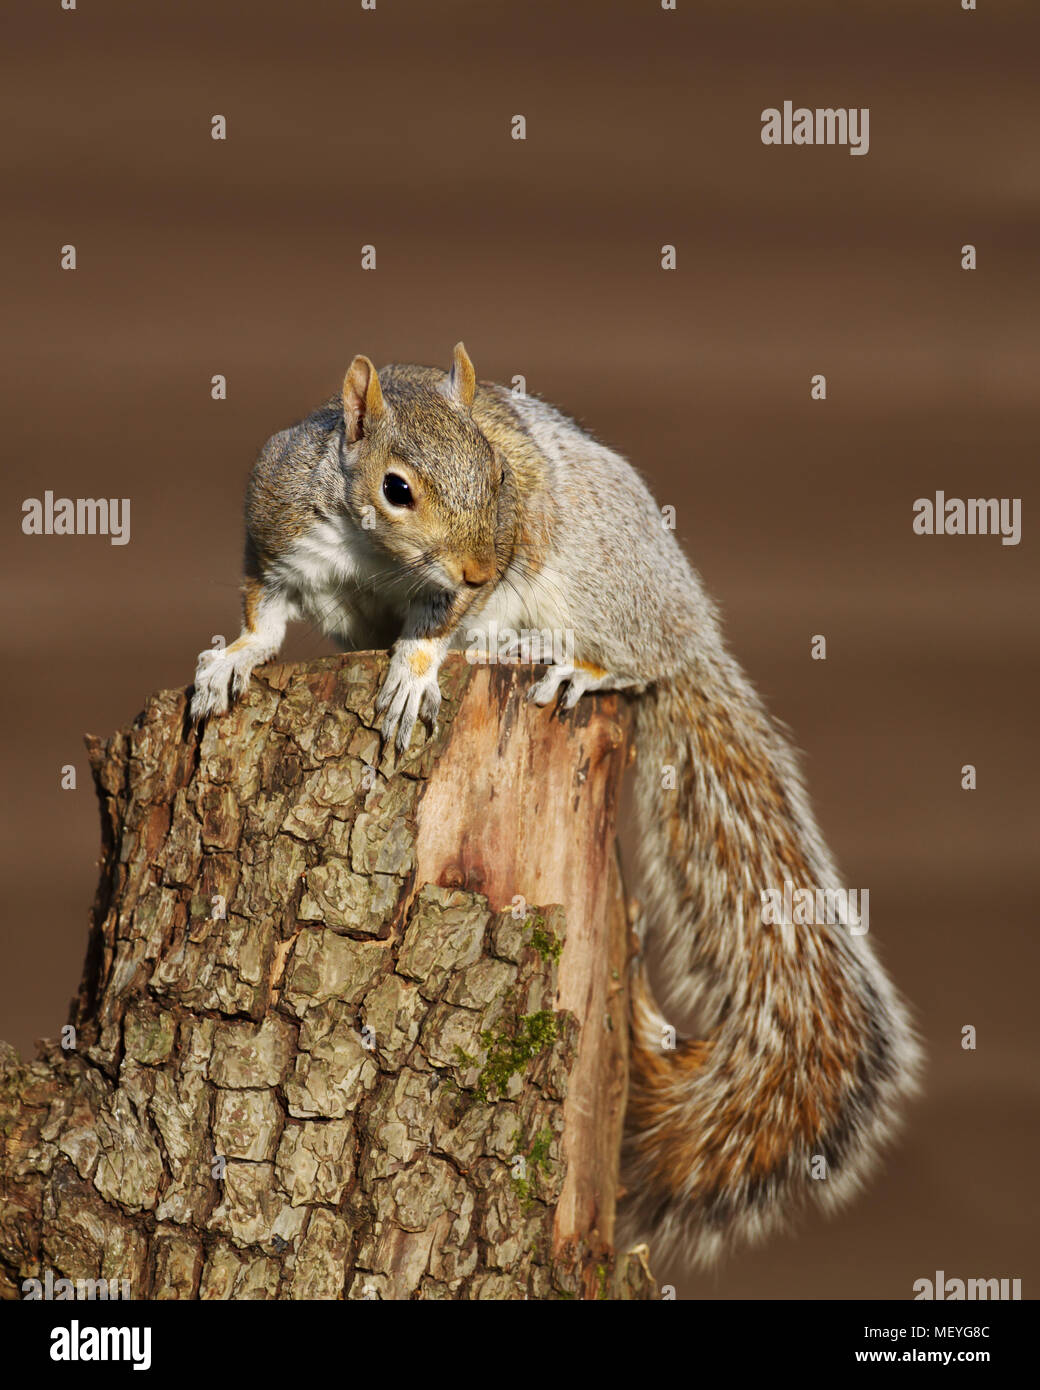 Close up of an Eastern grey squirrel sitting on the tree log, UK. - Stock Image